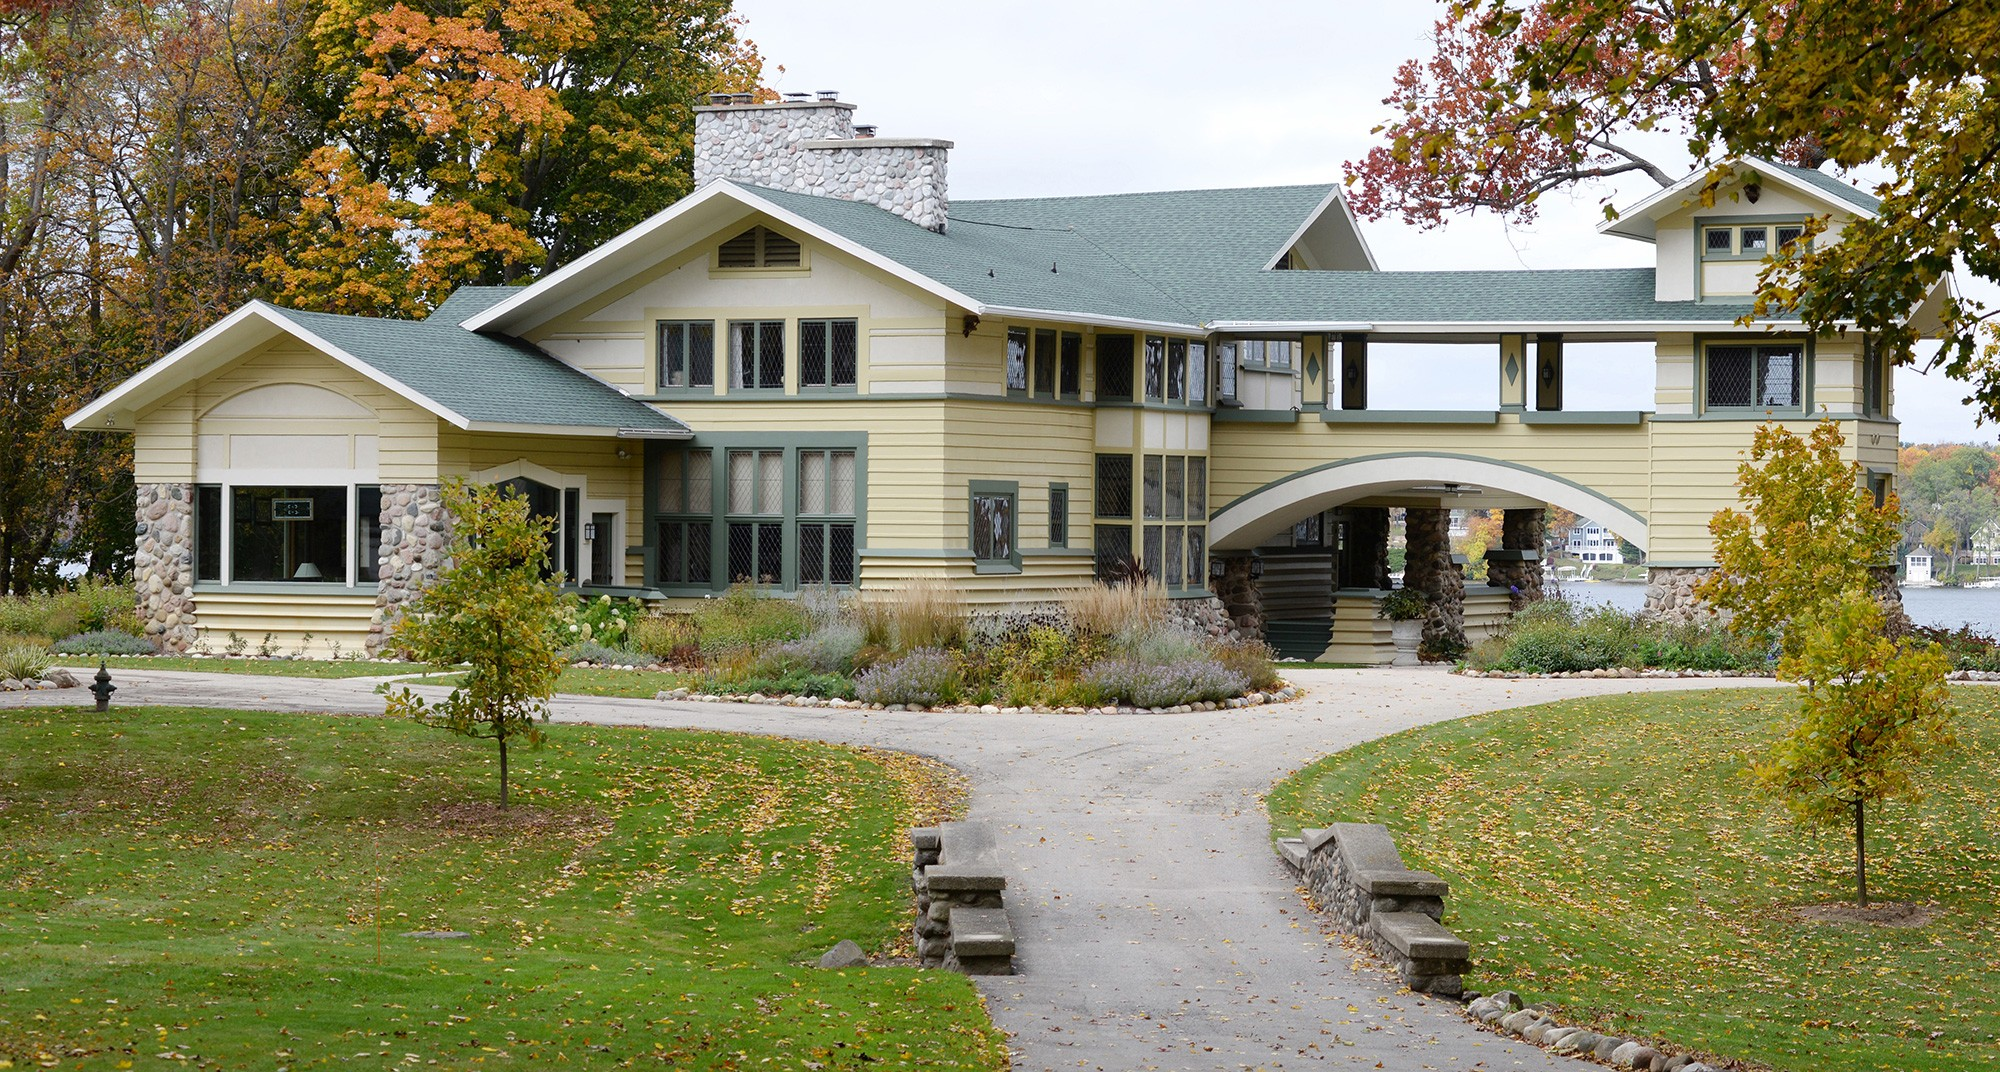 Frank Lloyd Wright S Penwern A Summer Estate Programs Events Chicago Architecture Center Cac